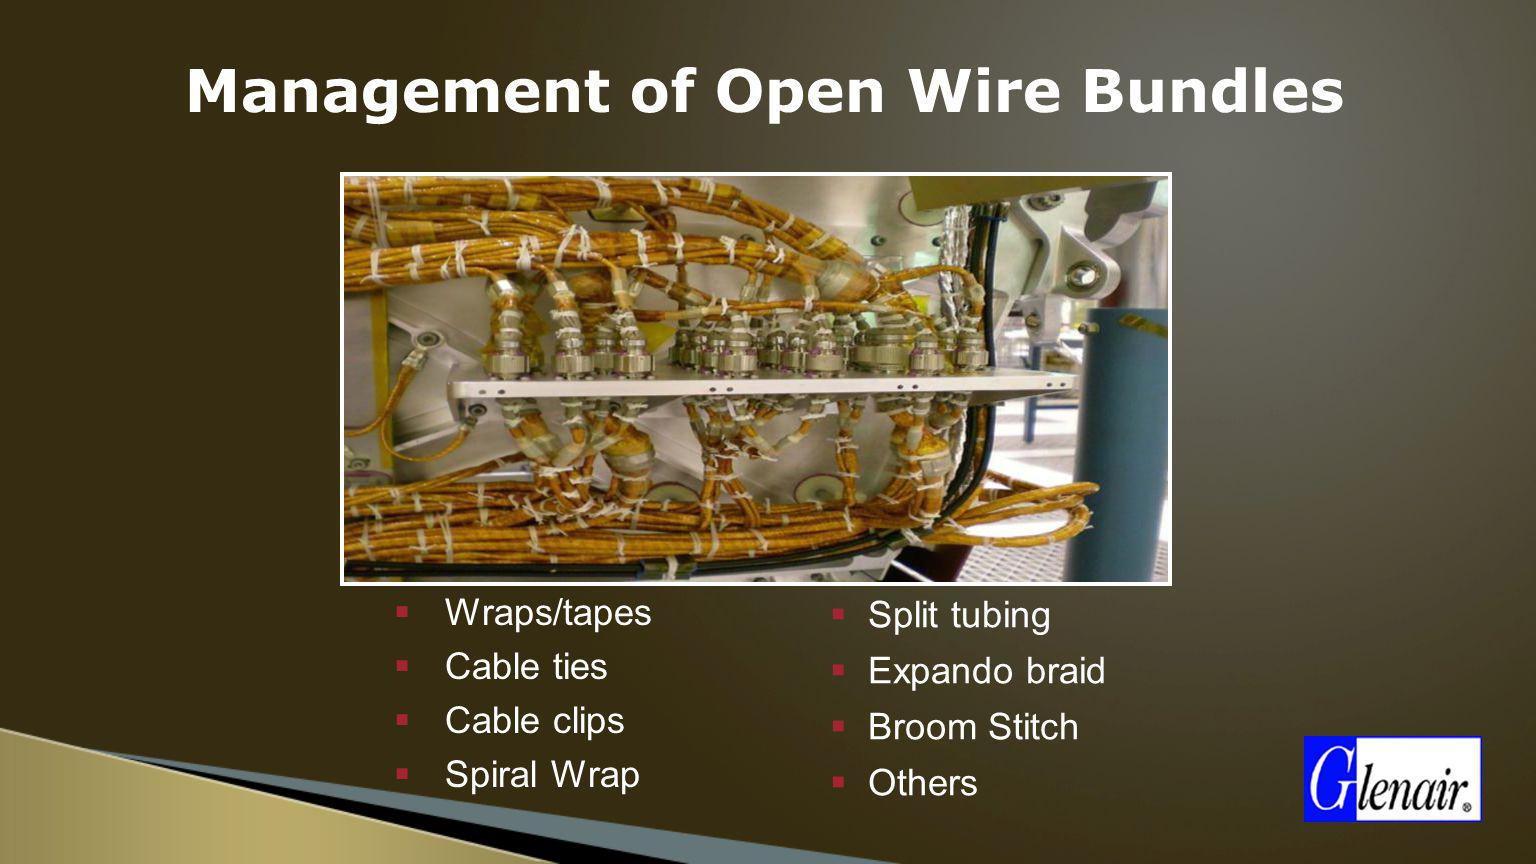 Management of Open Wire Bundles